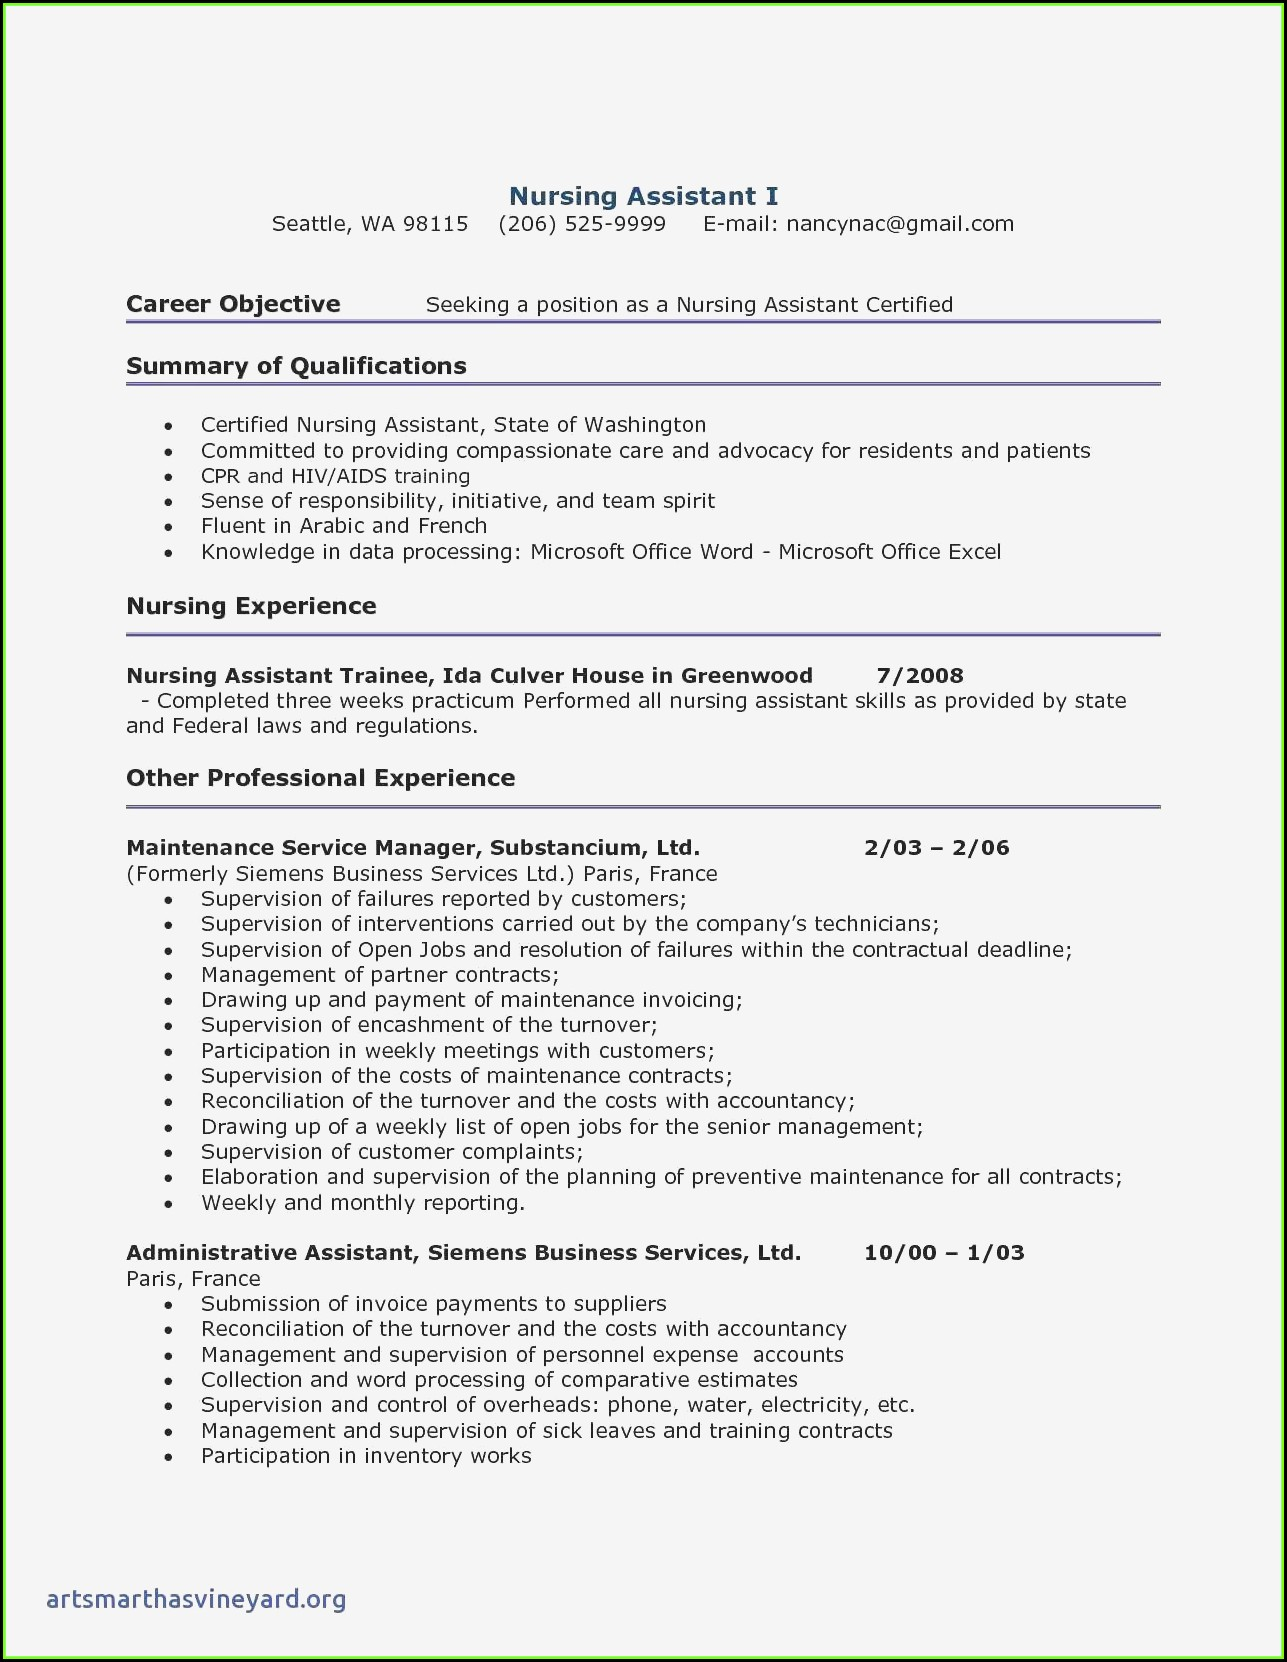 Free Resume Templates For Certified Nursing Assistant